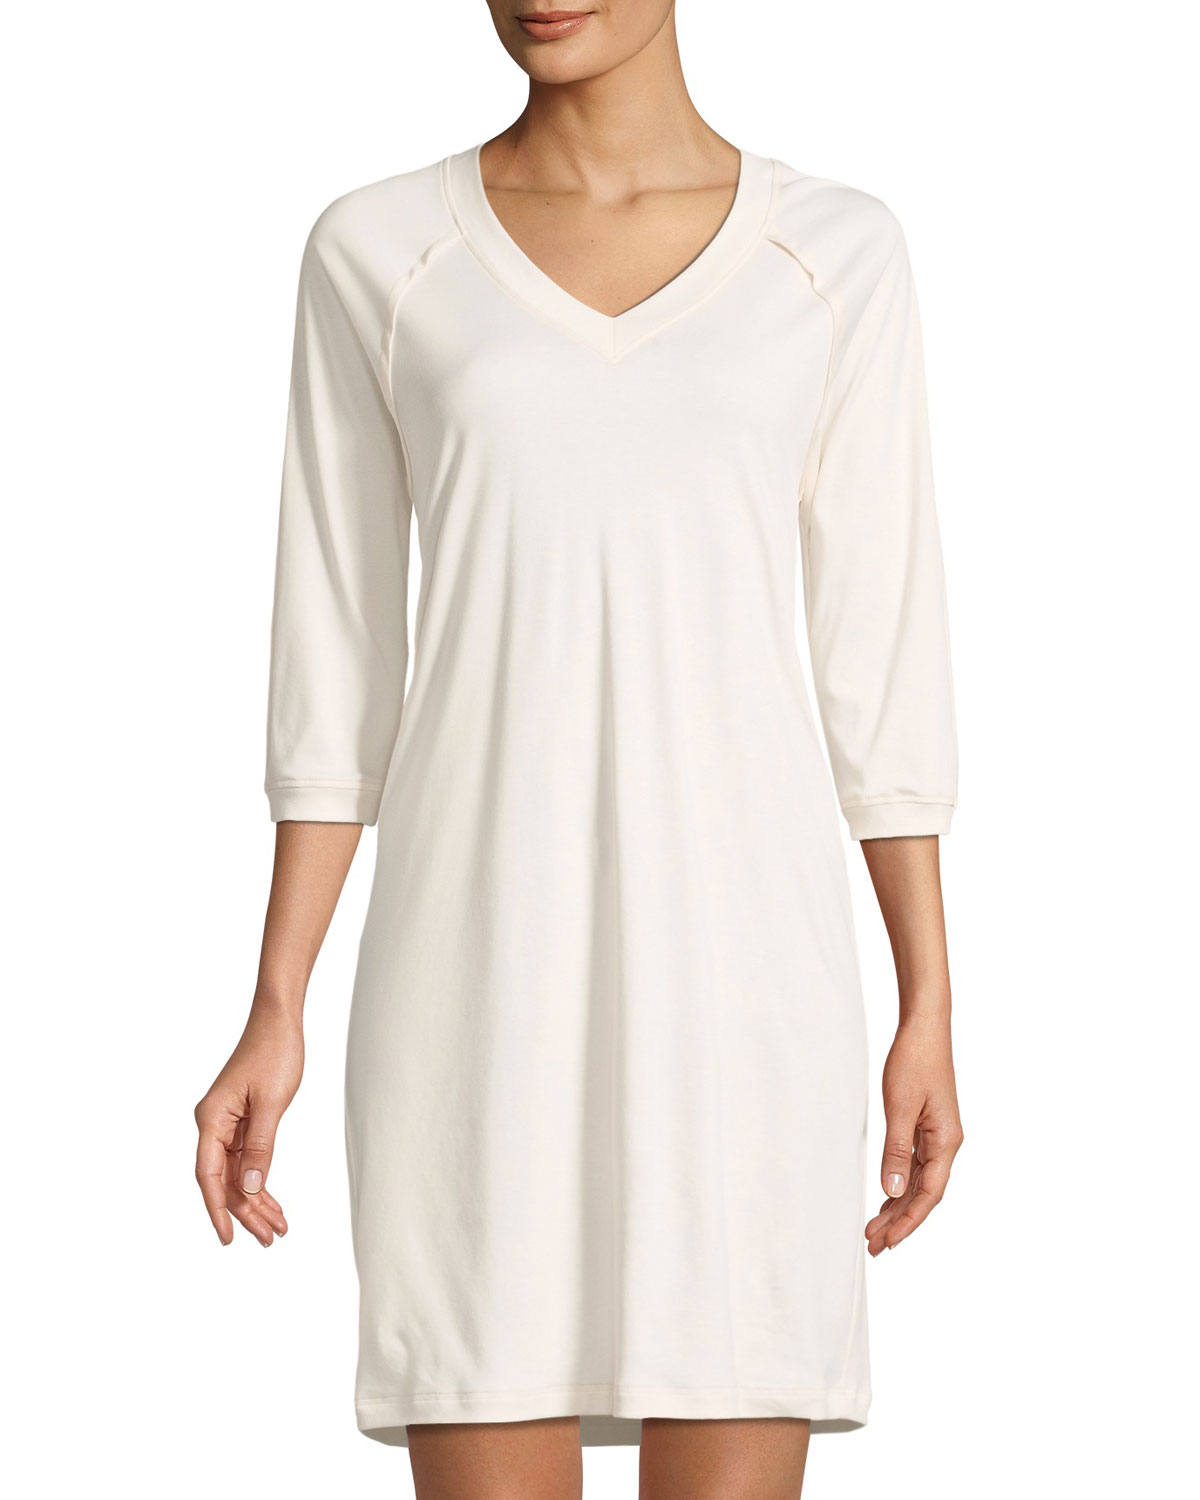 Hanro Gowns PURE ESSENCE 3/4-SLEEVE GOWN